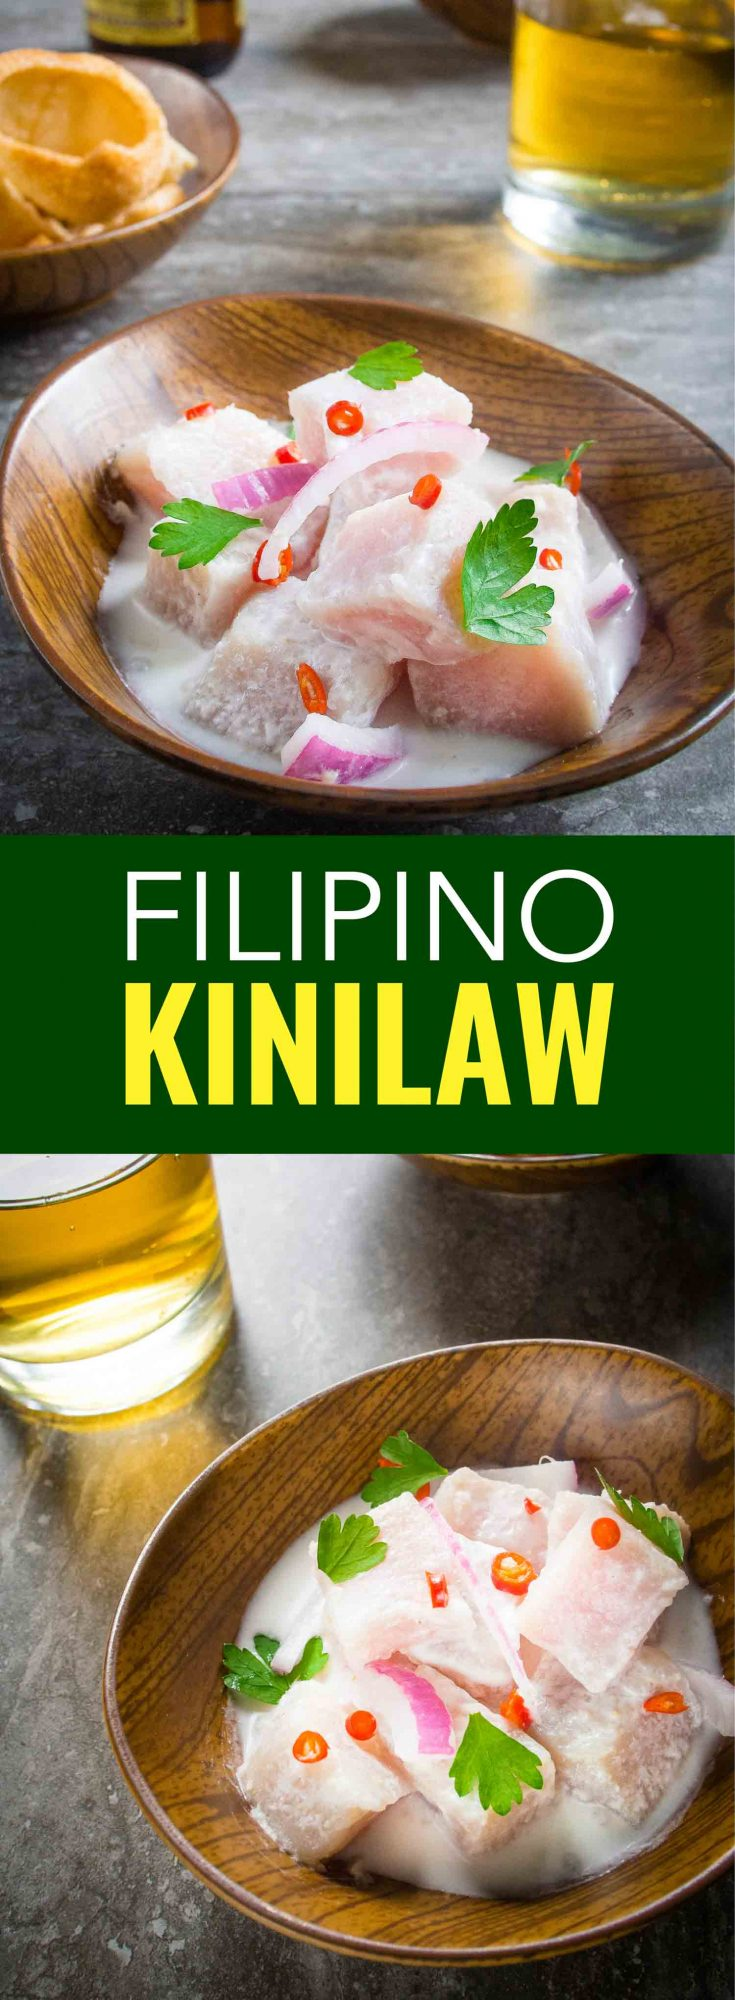 Forget poke and ceviche, kinilaw is the real deal. It is a Filipino appetizer marinated in coconut vinegar and citrus then spiced with bird's eye chili pepper, you won't believe how easy it is to make this Filipino kinilaw kilawin recipe.  #Filipino #Philippines #Asia #Recipe #Ceviche #poke #kinilaw #recipe #healthy #fish #easy